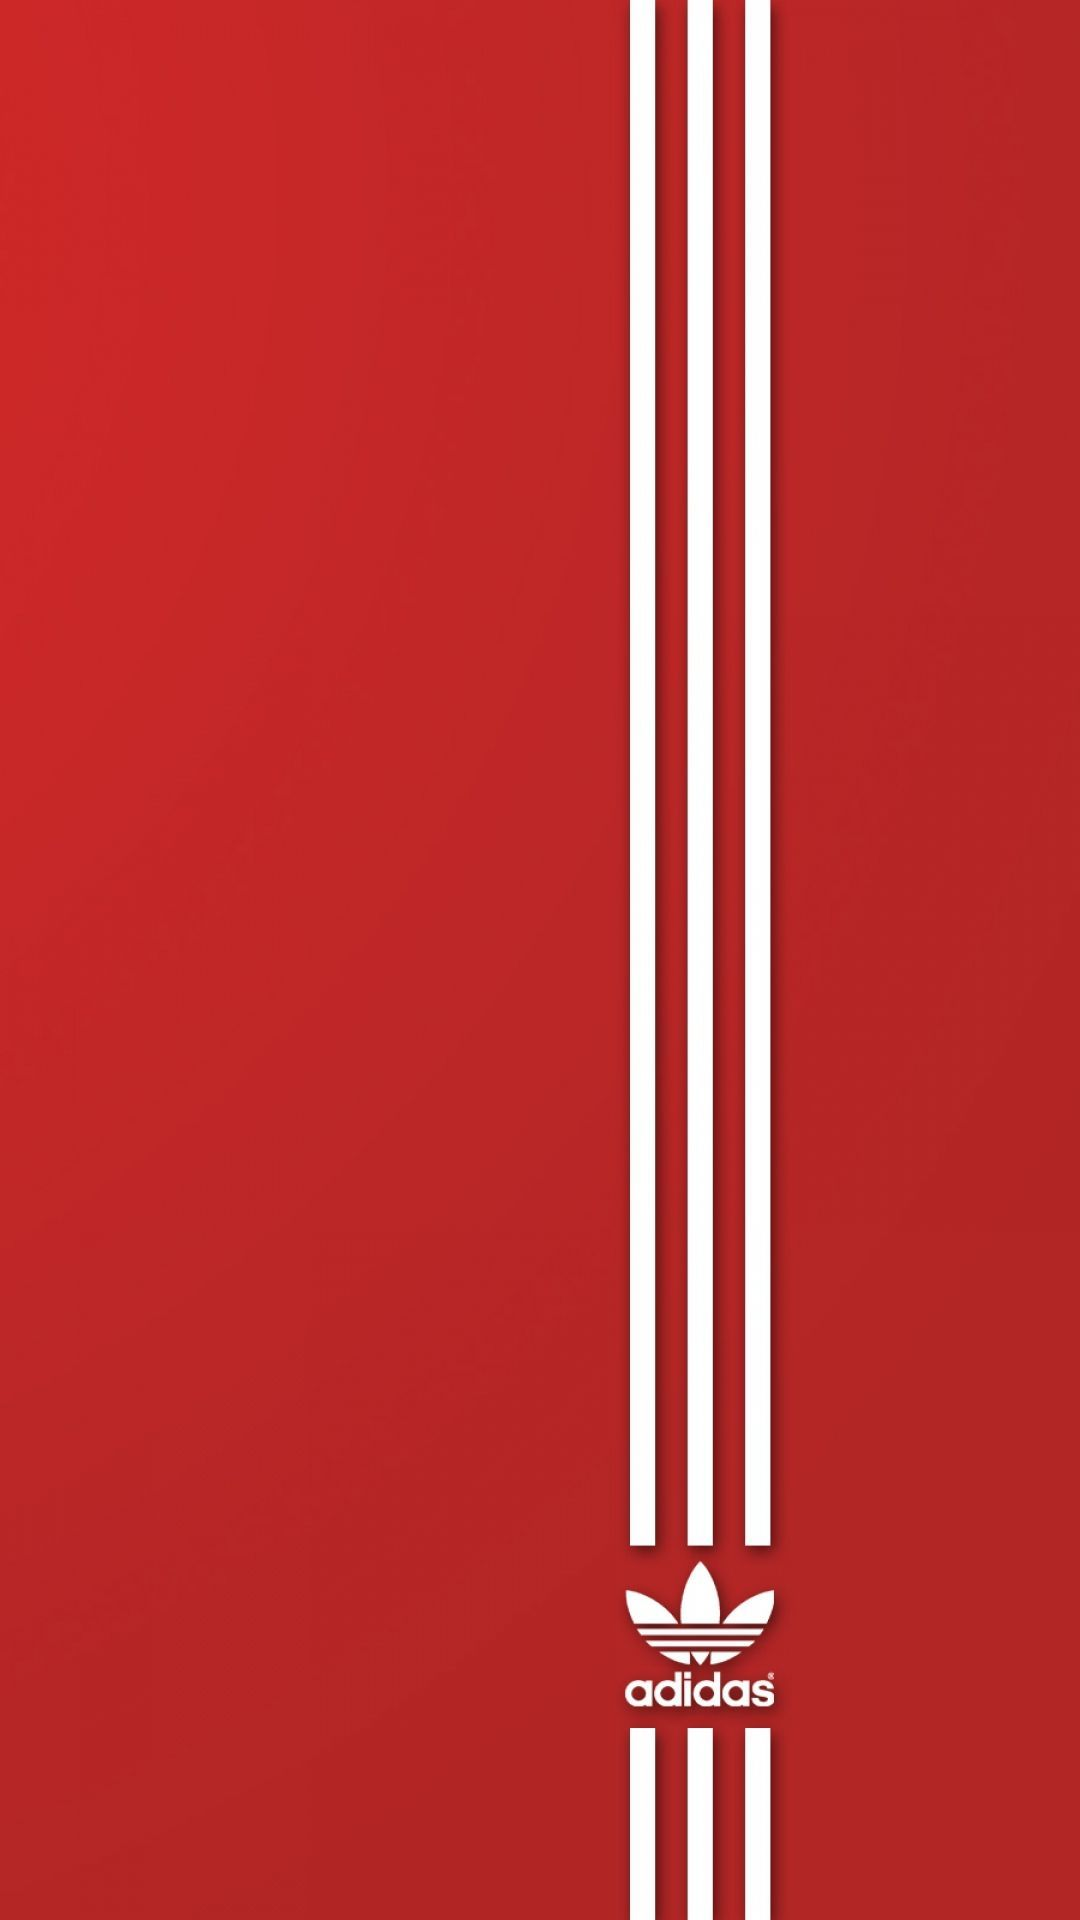 Adidas Red Phone Wallpapers Top Free Adidas Red Phone